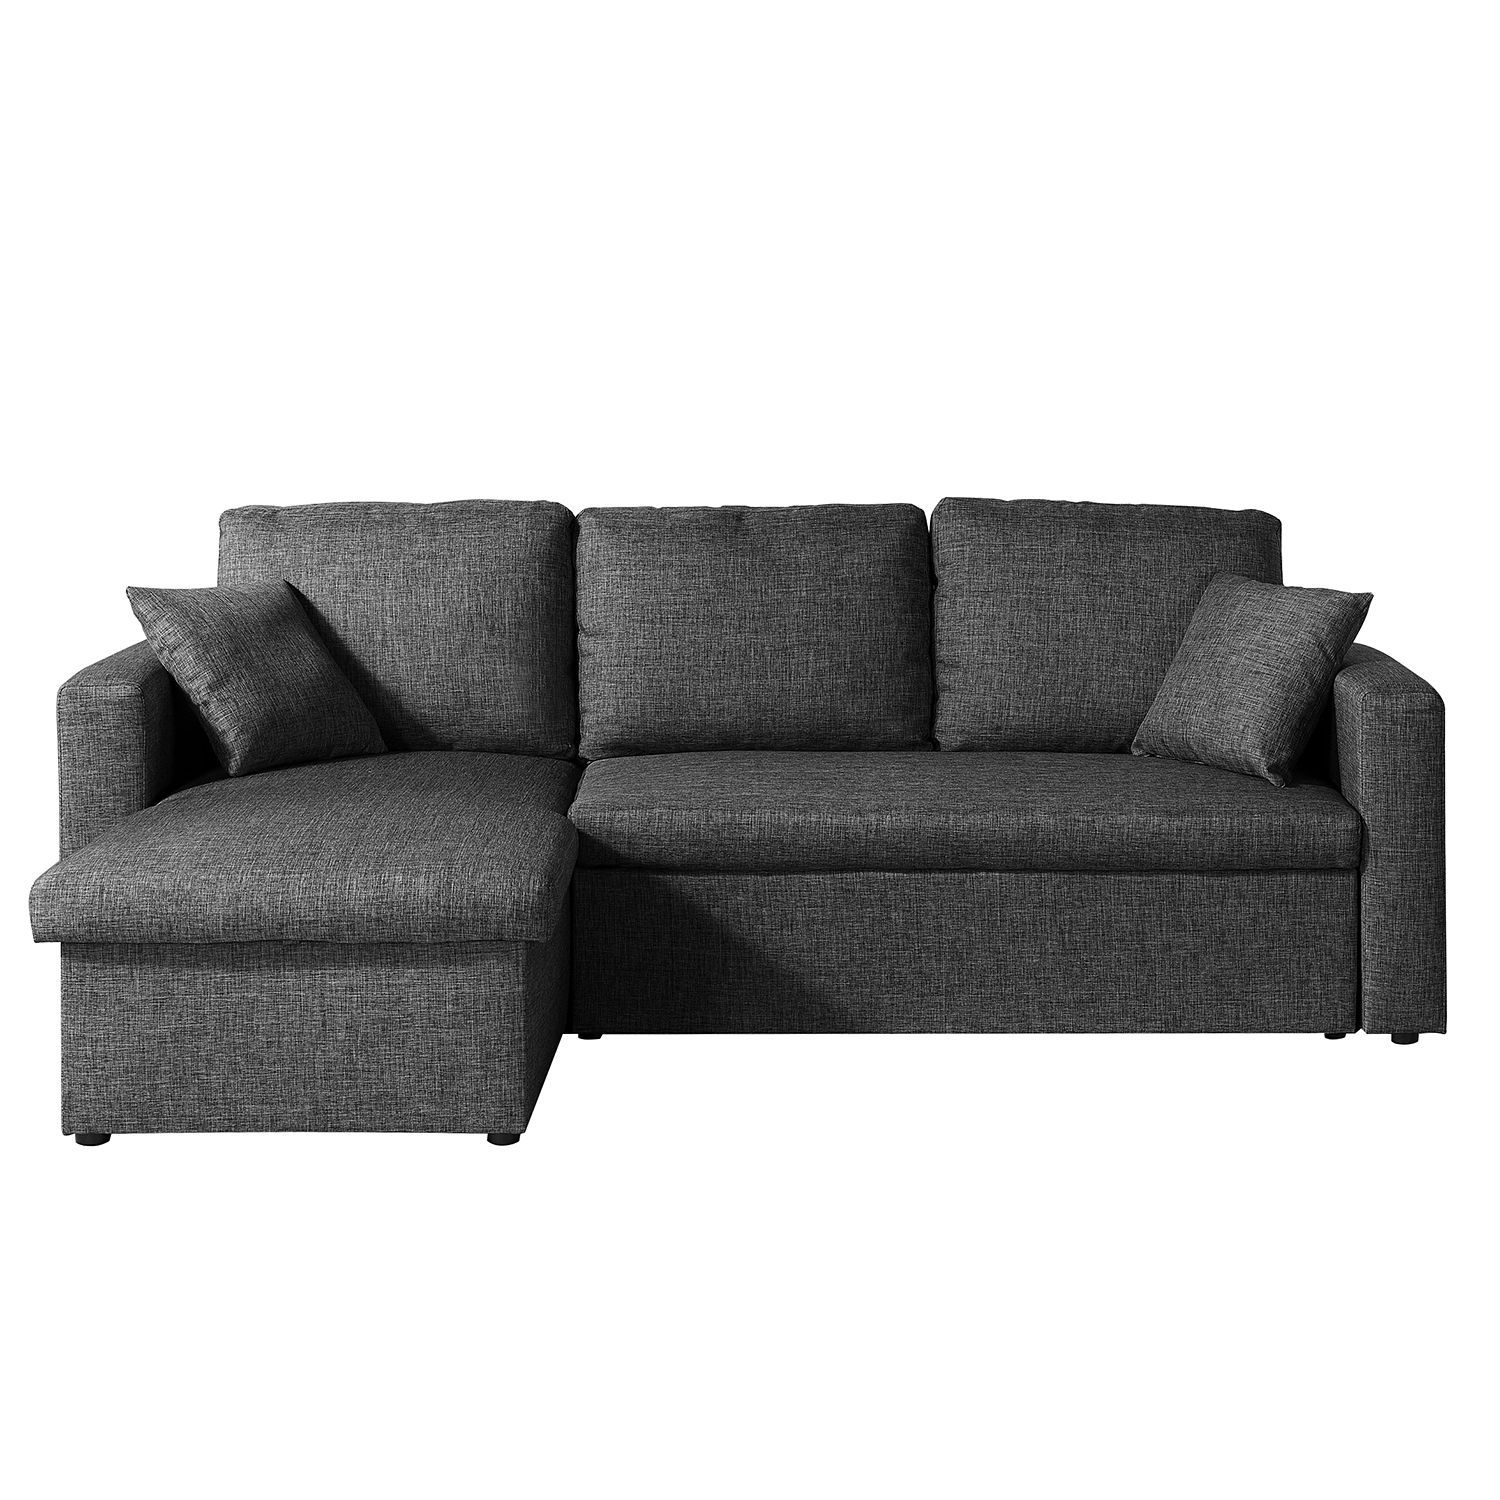 3 Ecksofa Sofa Bettfunktion Leder Review Home Co